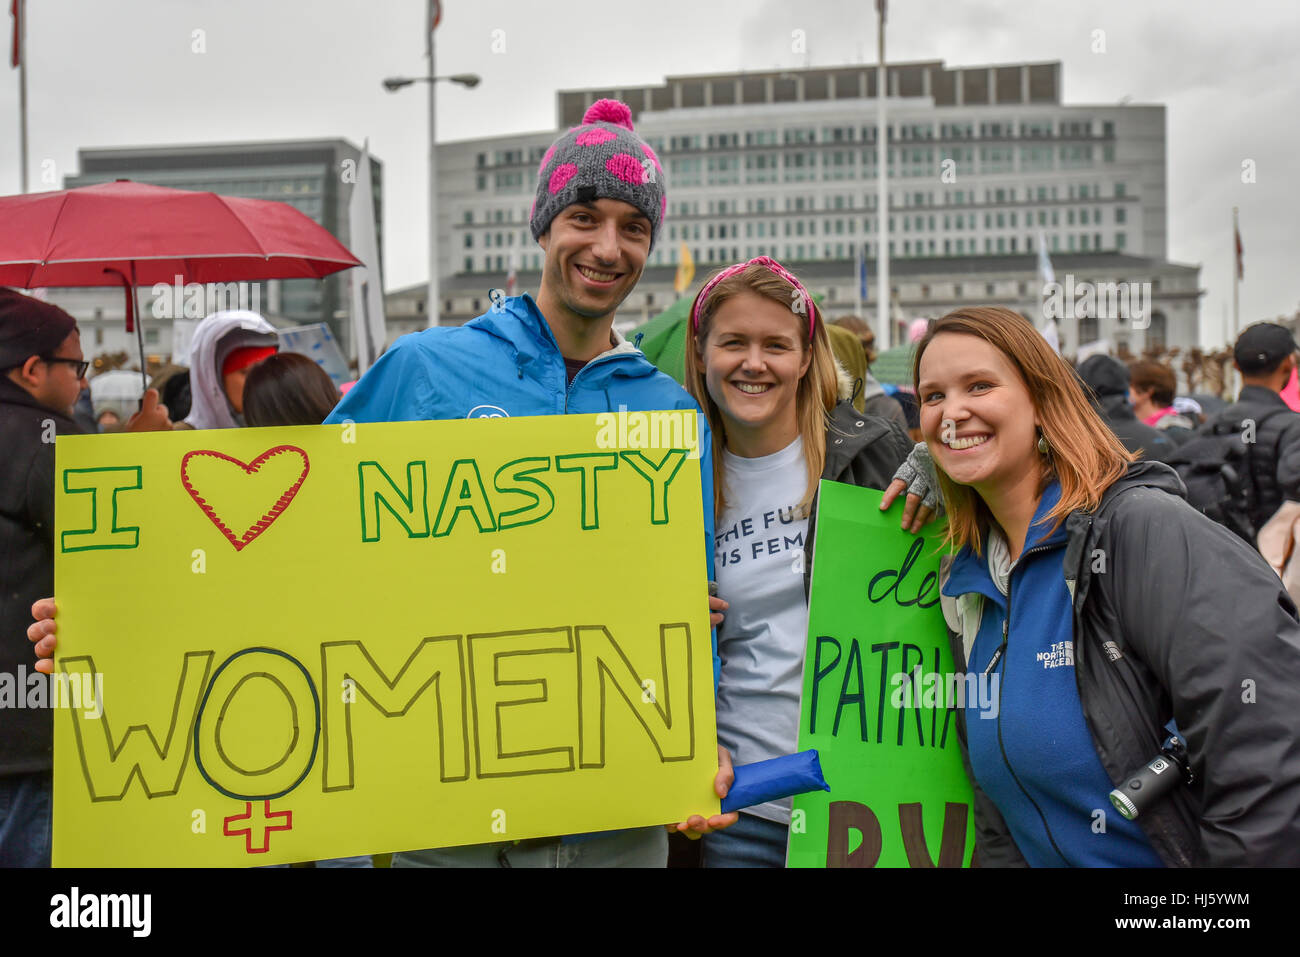 San Francisco, California, USA. 21st January, 2017. Young man holds nasty women sign next to female friends during Stock Photo